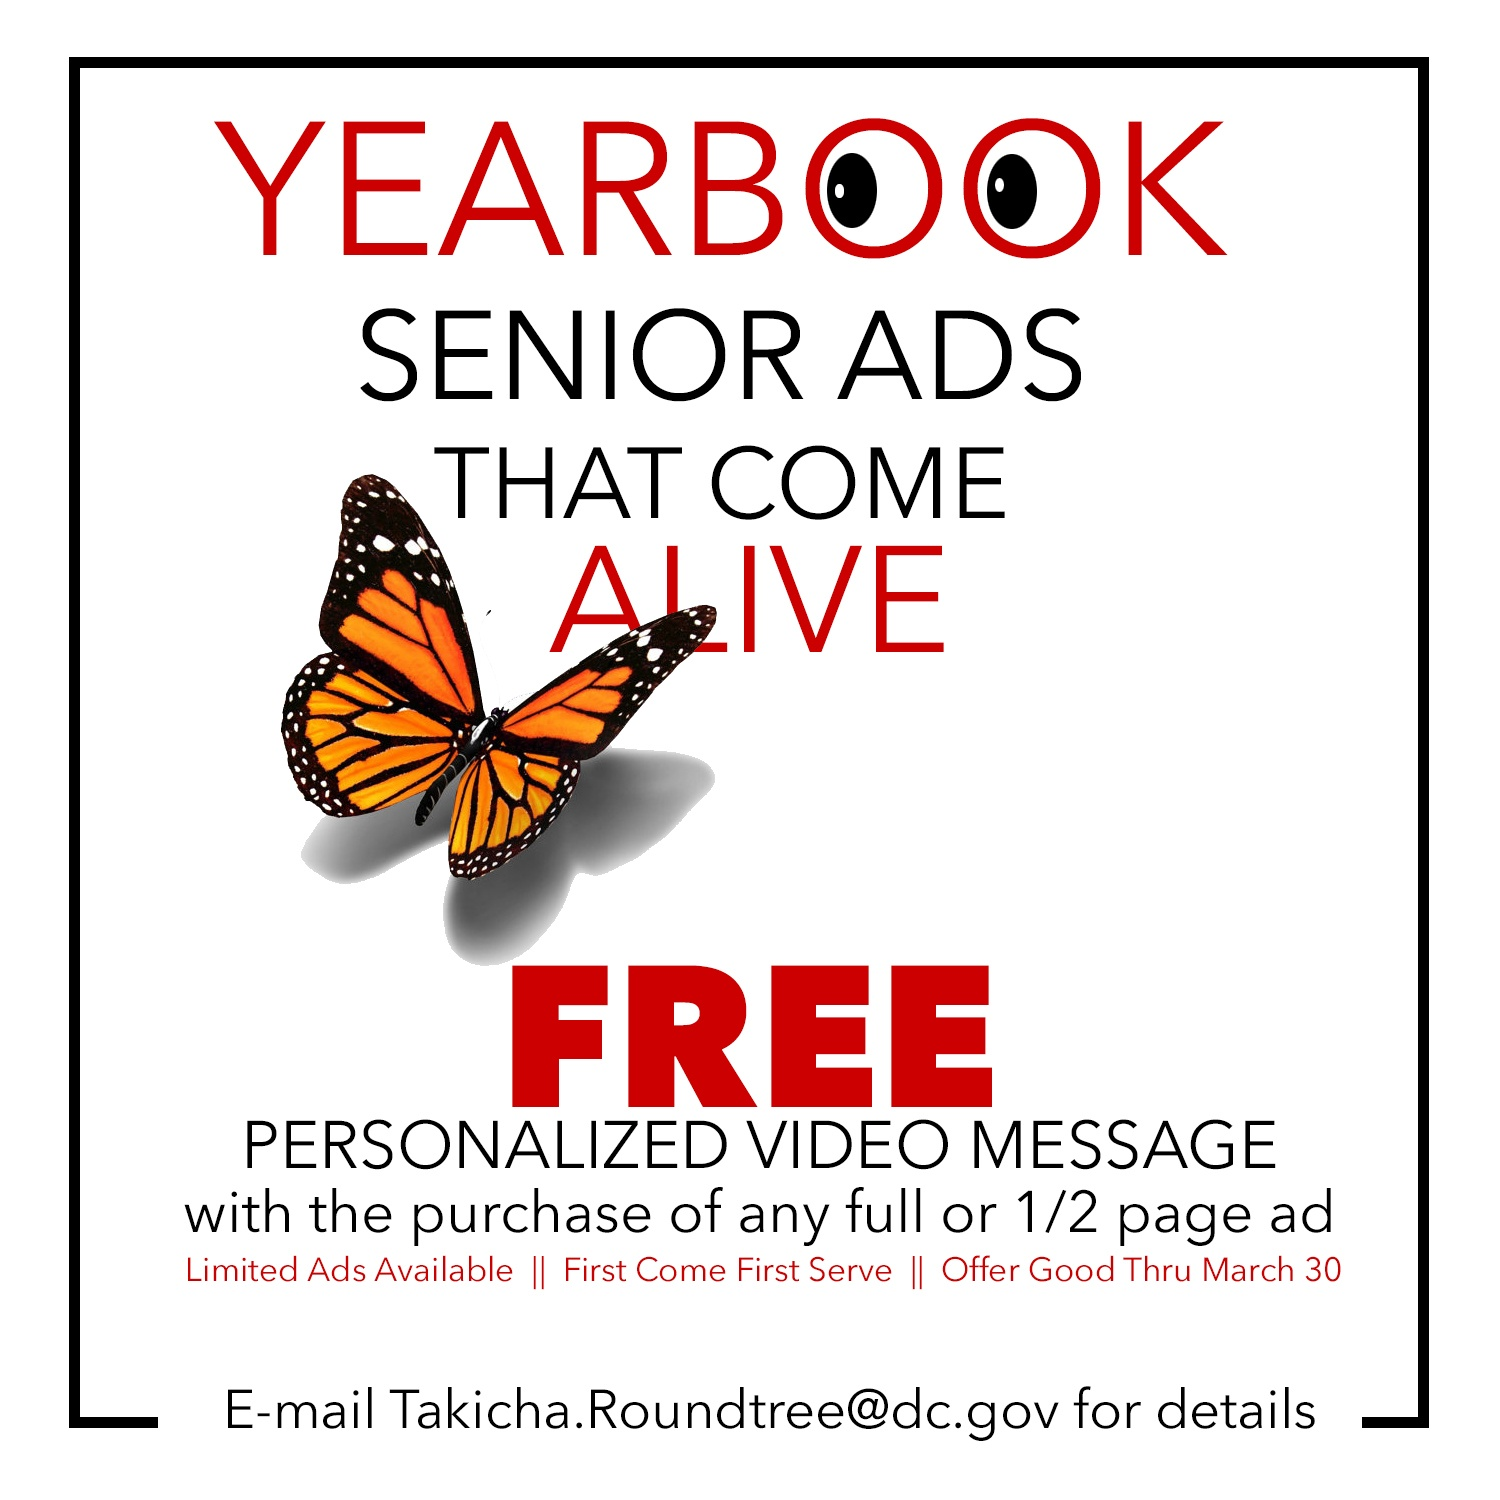 Yearbook Senior Ad Sale _free video Flyer